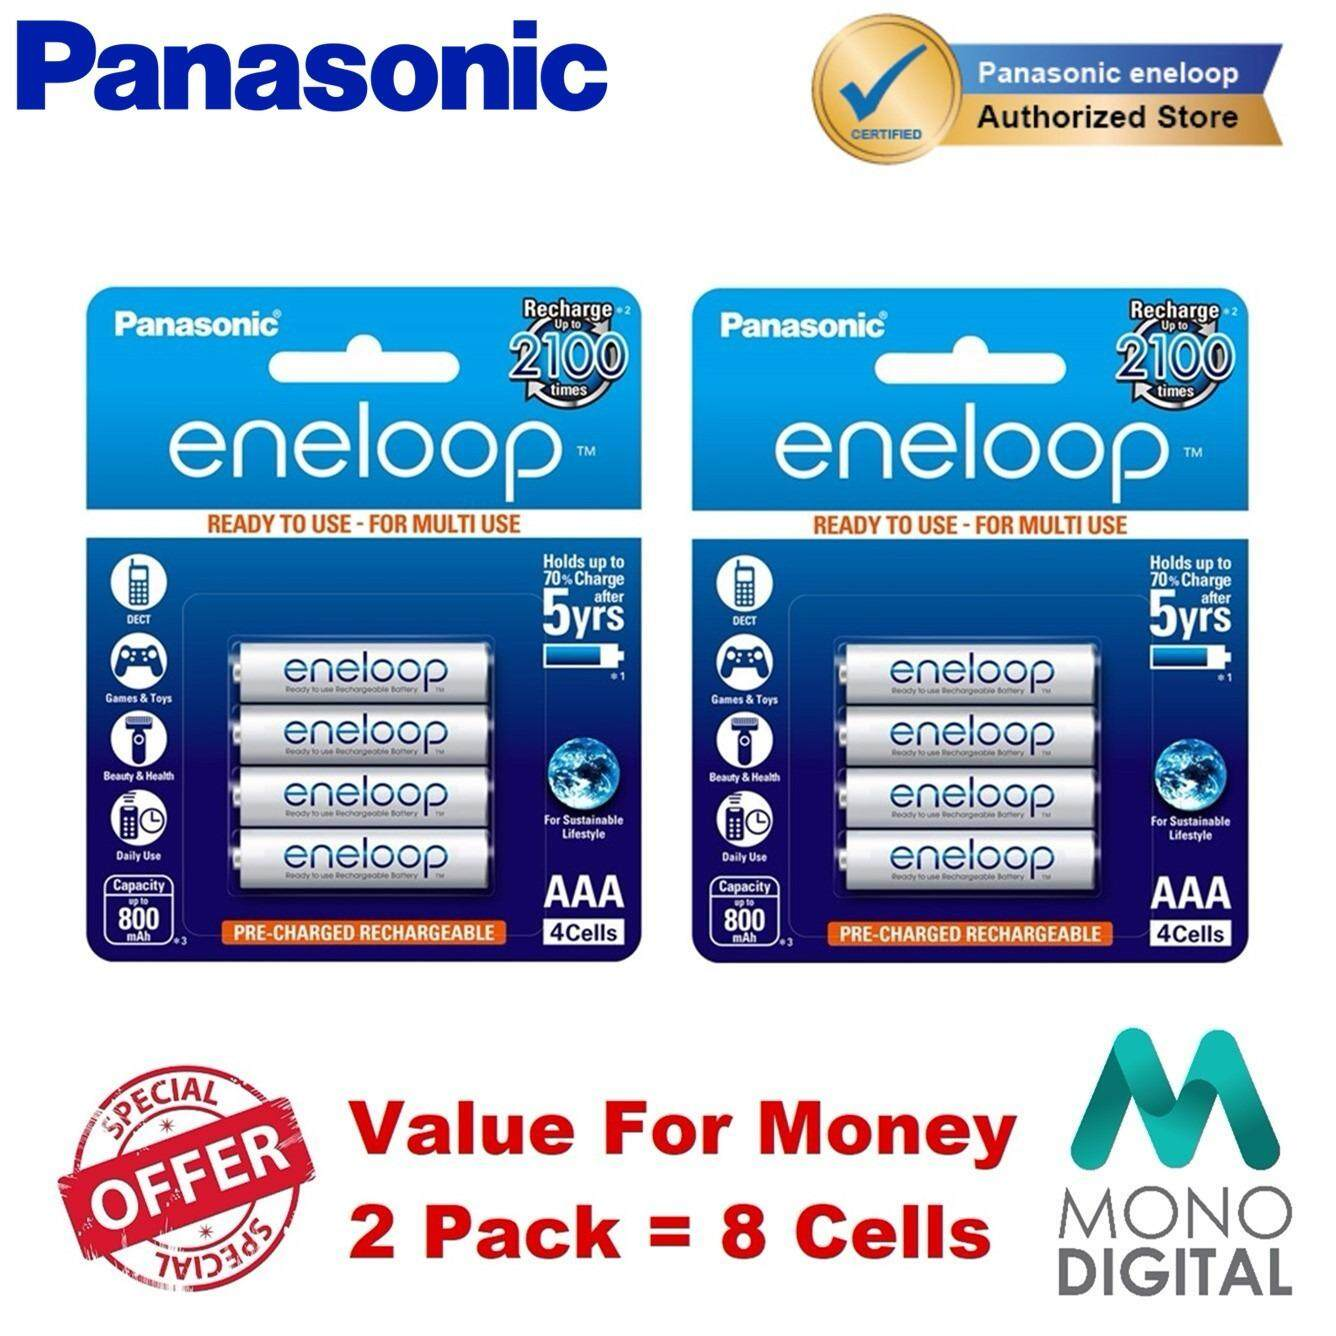 PANASONIC Eneloop AAA Battery 800mAh 2100 Cycles (2 UNIT BUNDLE) ORIGINAL Malaysia